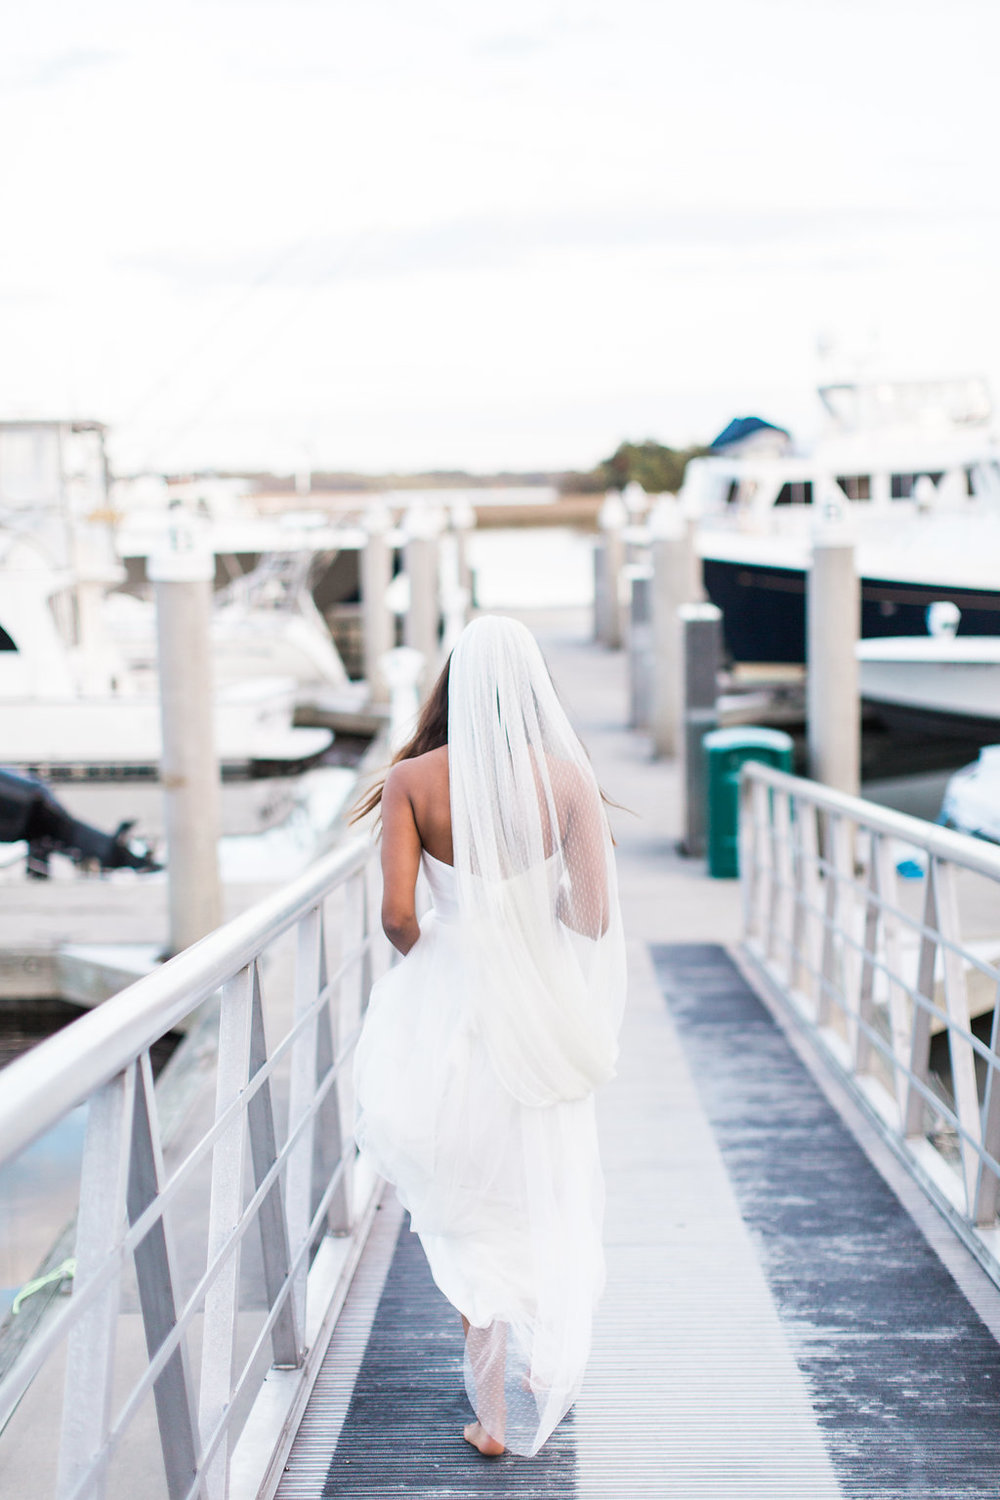 apt-b-photography-ti-adora-7655-point-desprit-wedding-dress-swiss-dot-wedding-dress-marina-wedding-coastal-wedding-ivory-and-beau-bridal-boutique-savannah-wedding-dresses-savannah-bridal-gowns-adele-amelia-savanah-florist-1.jpg